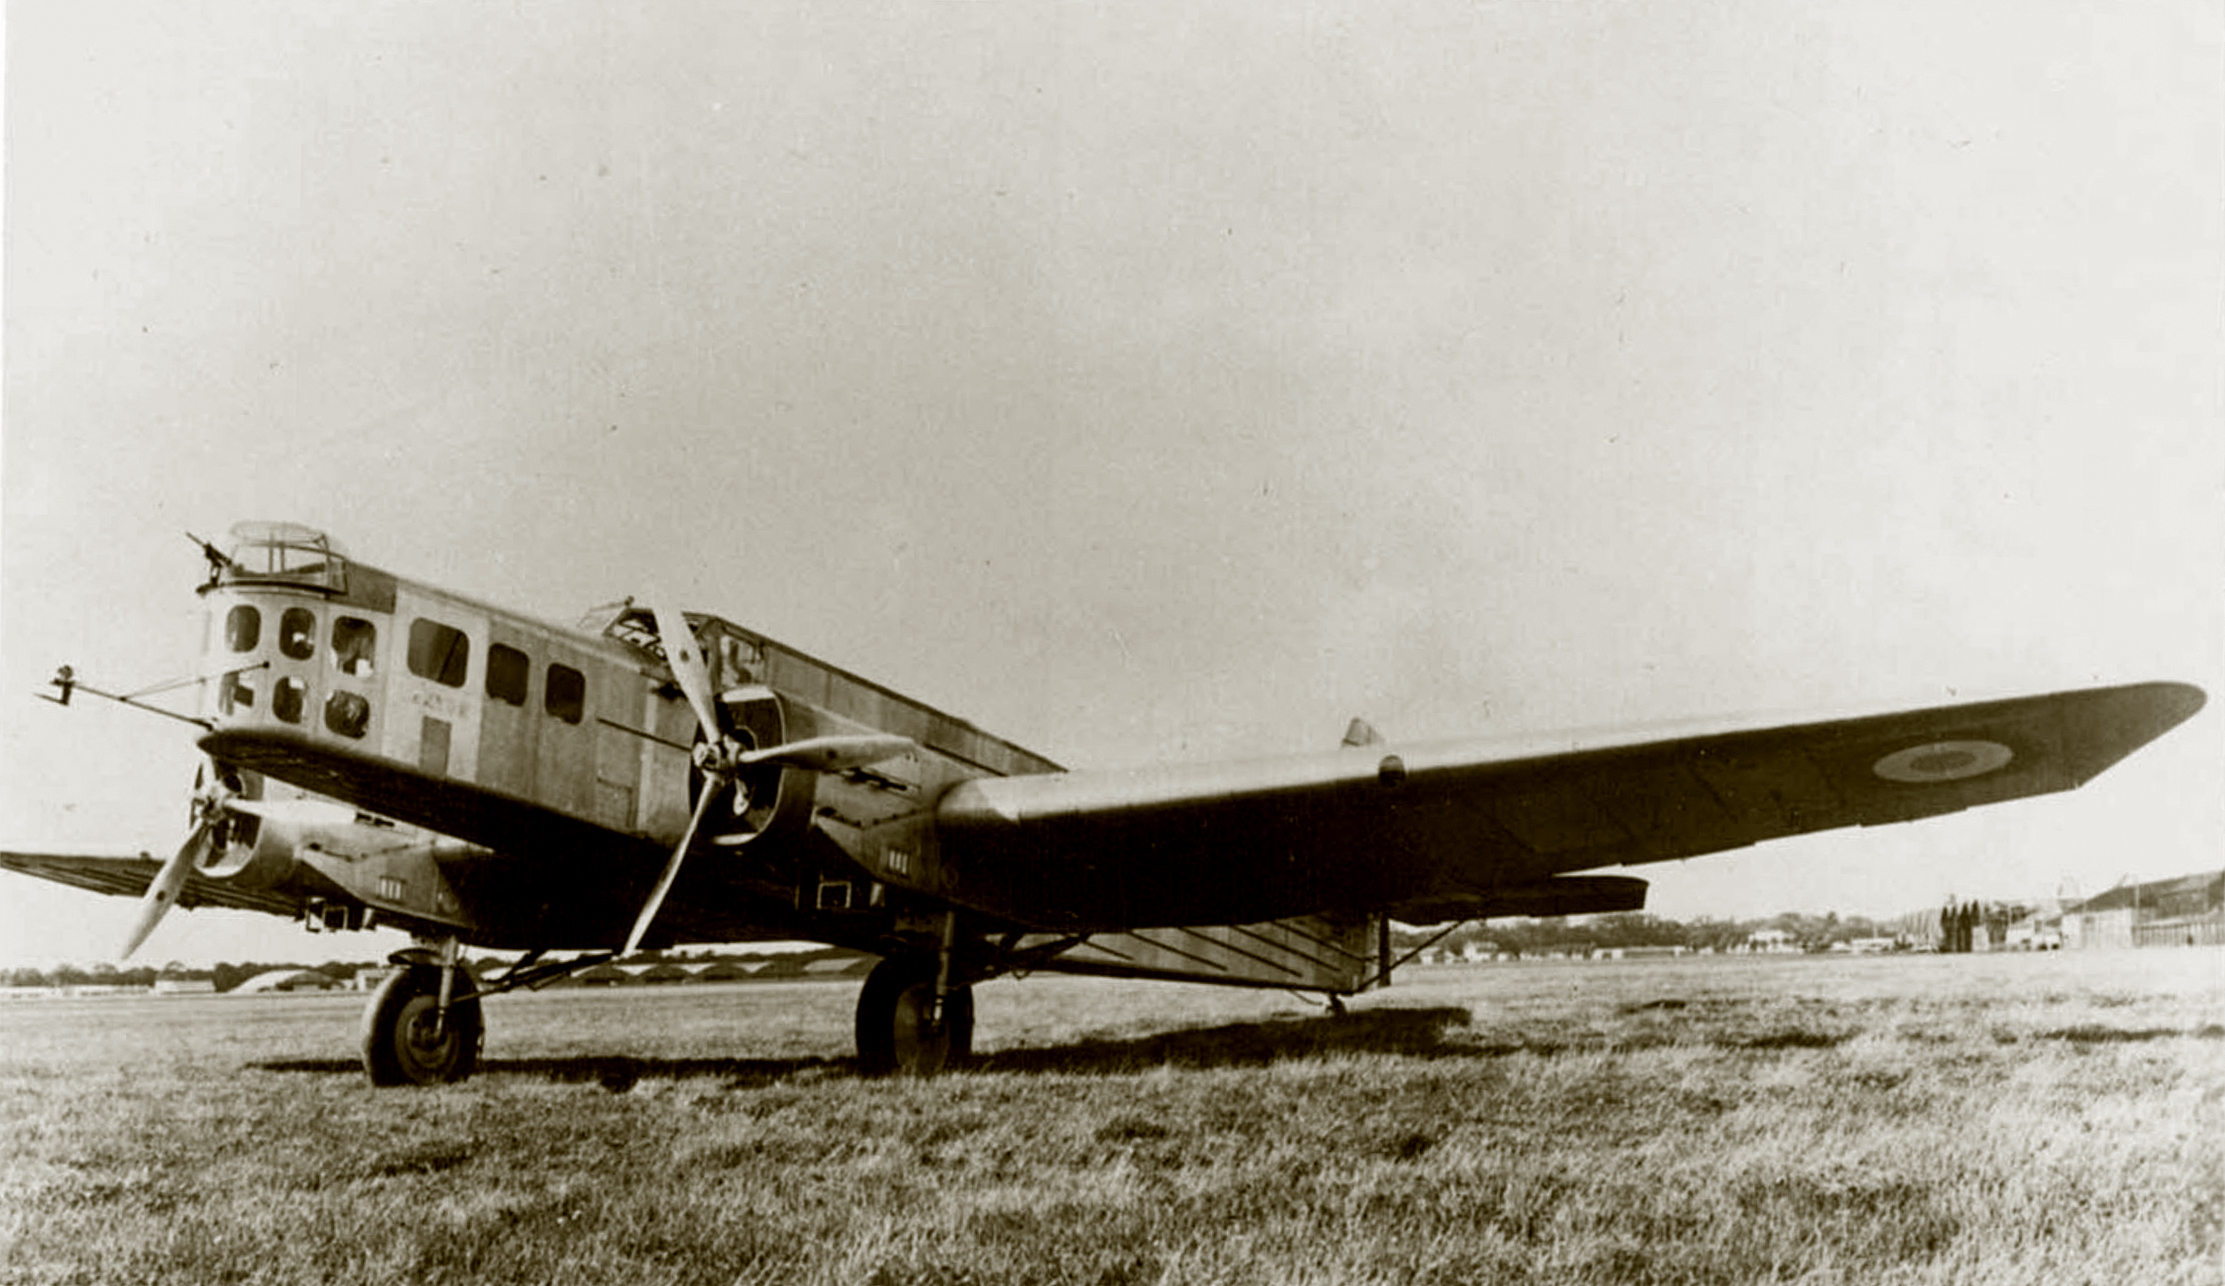 French Airforce Bloch MB 211 based in France pre war 1940 ebay 01